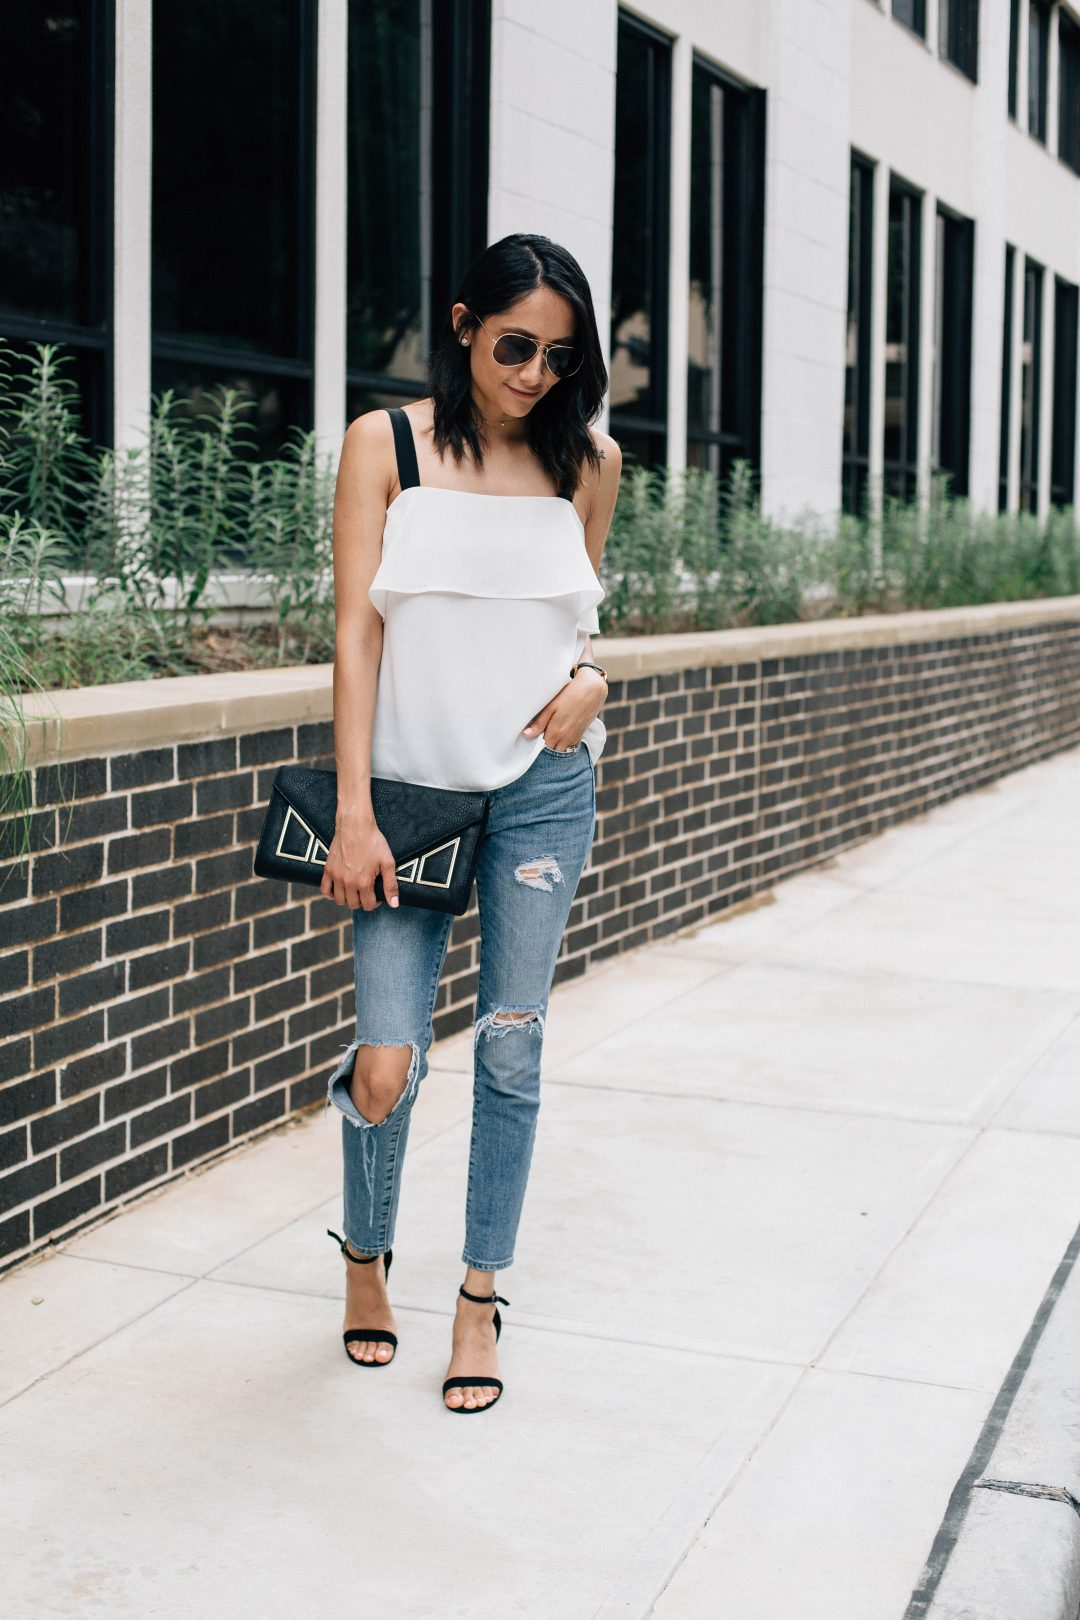 Fashion blogger Lilly Beltran of Daily Craving wearing a tiered top and ripped jeans